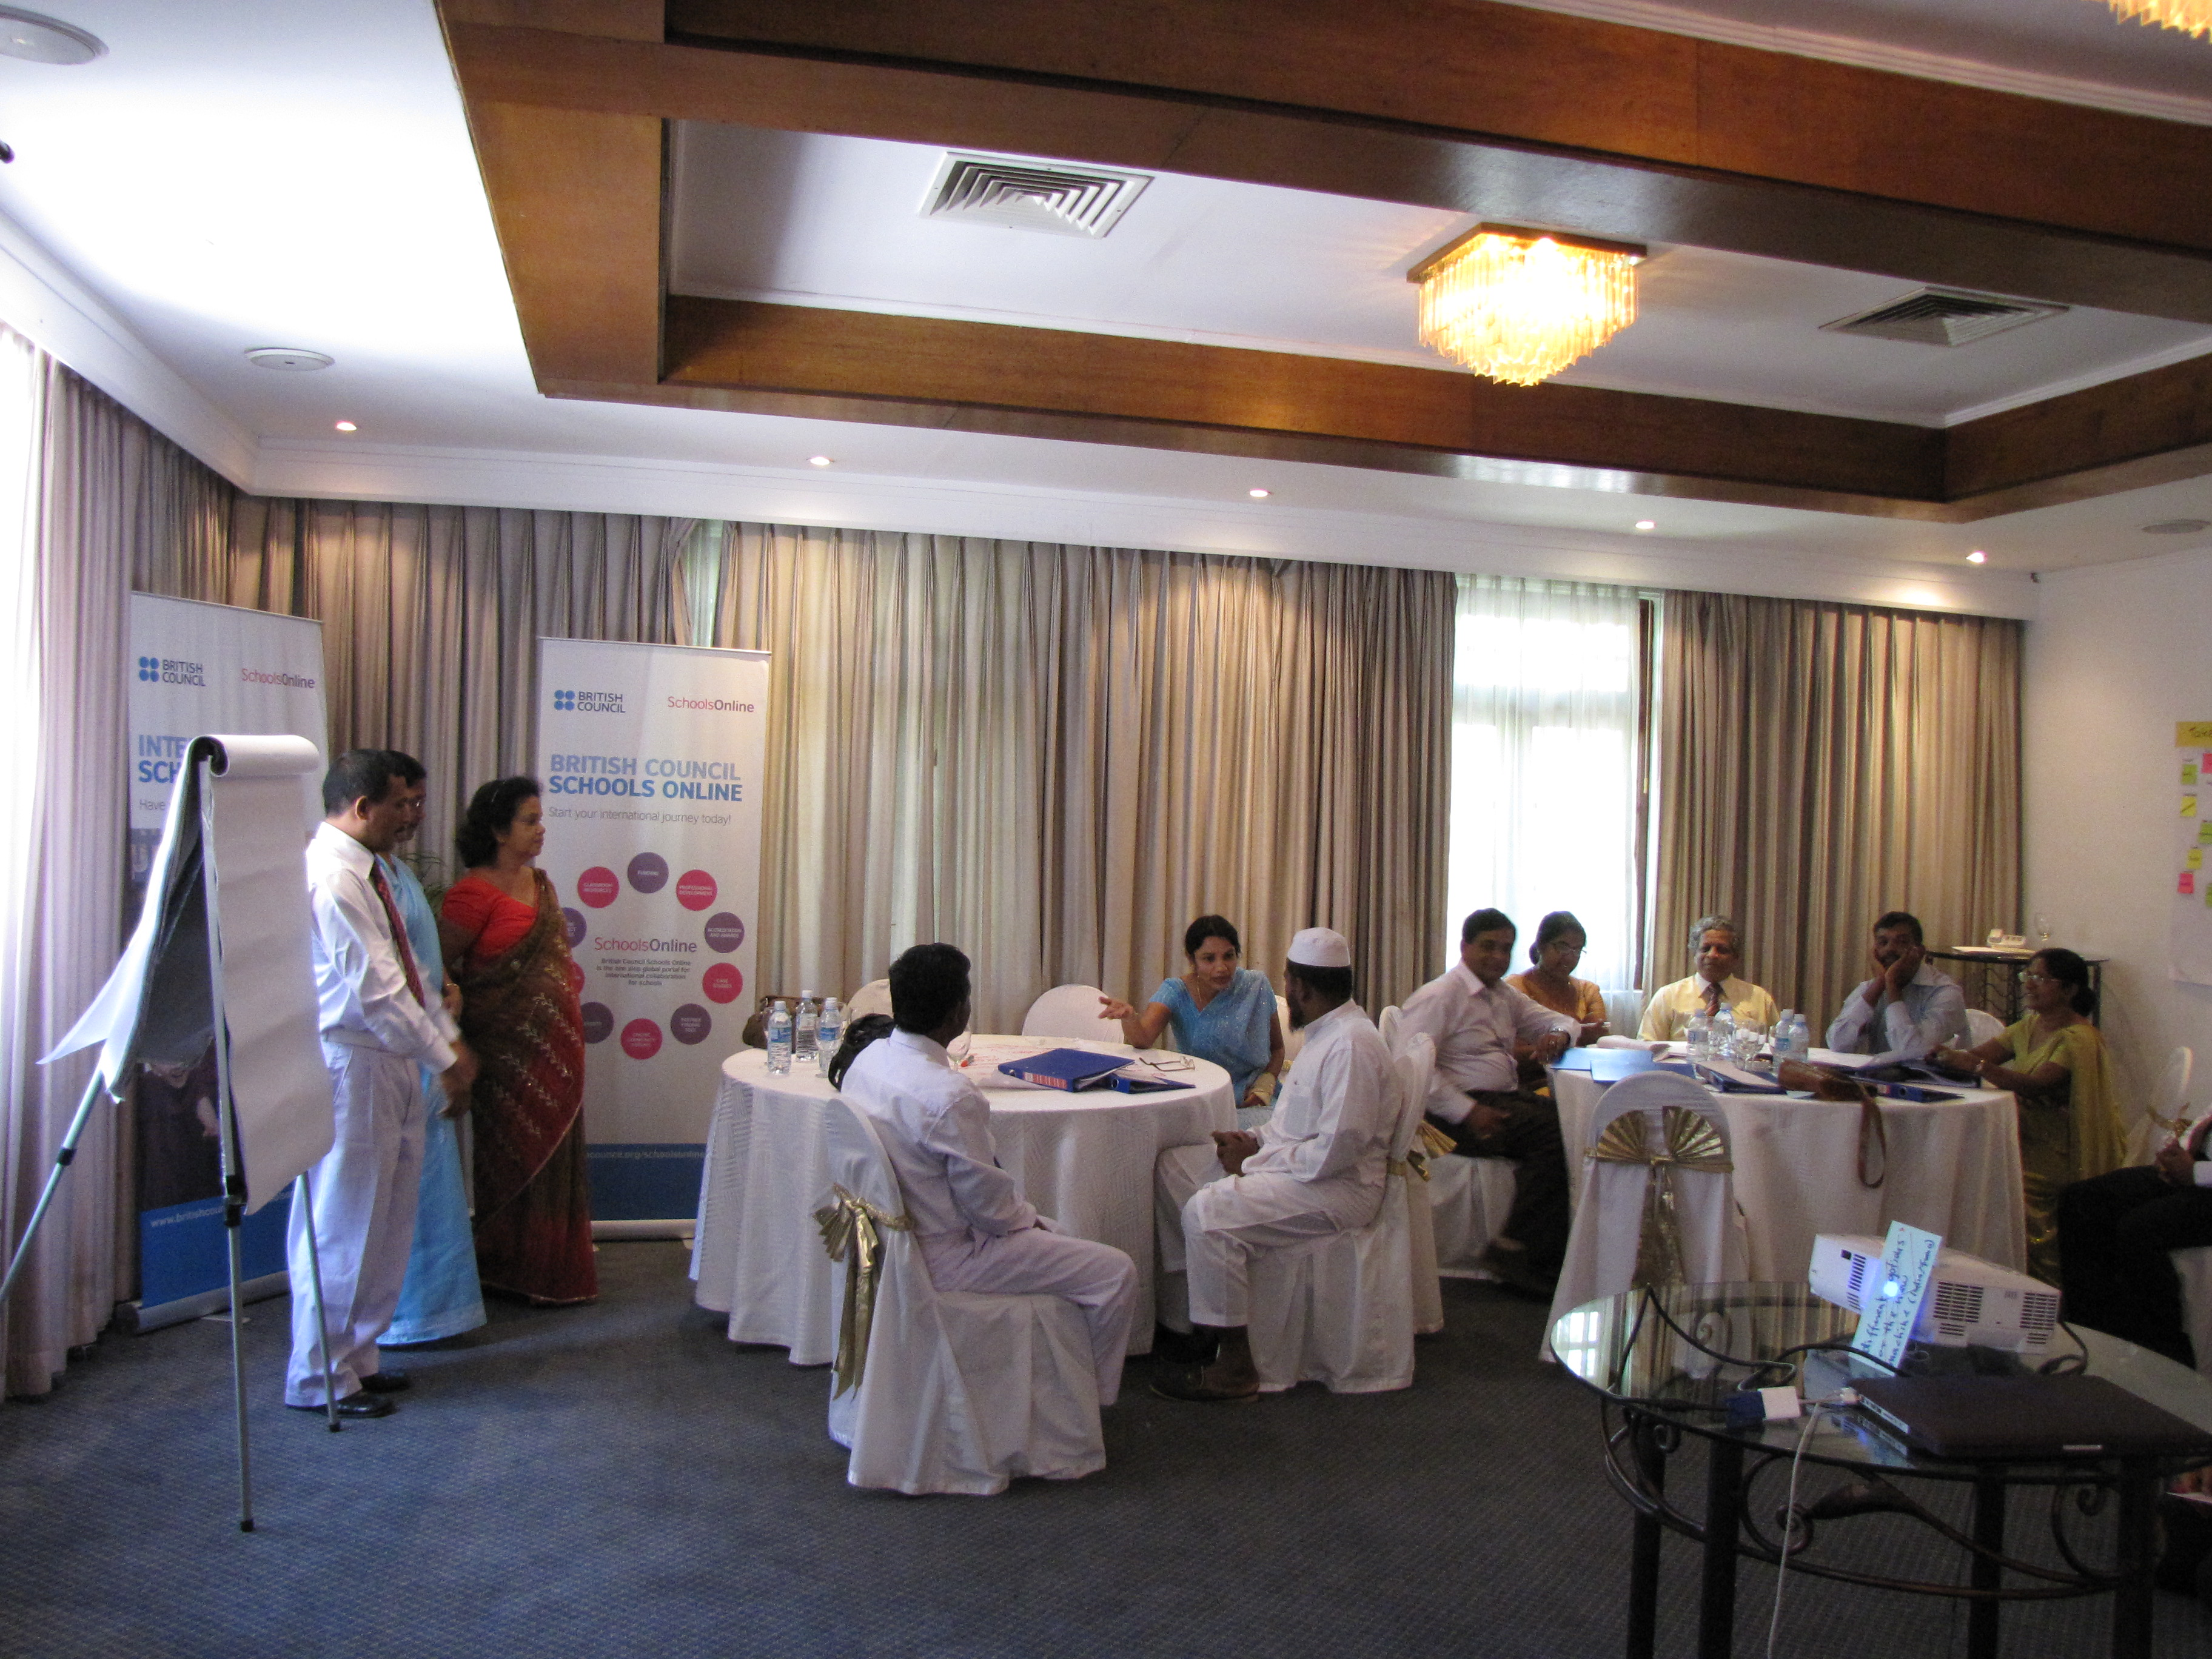 British Council Workshop in Action